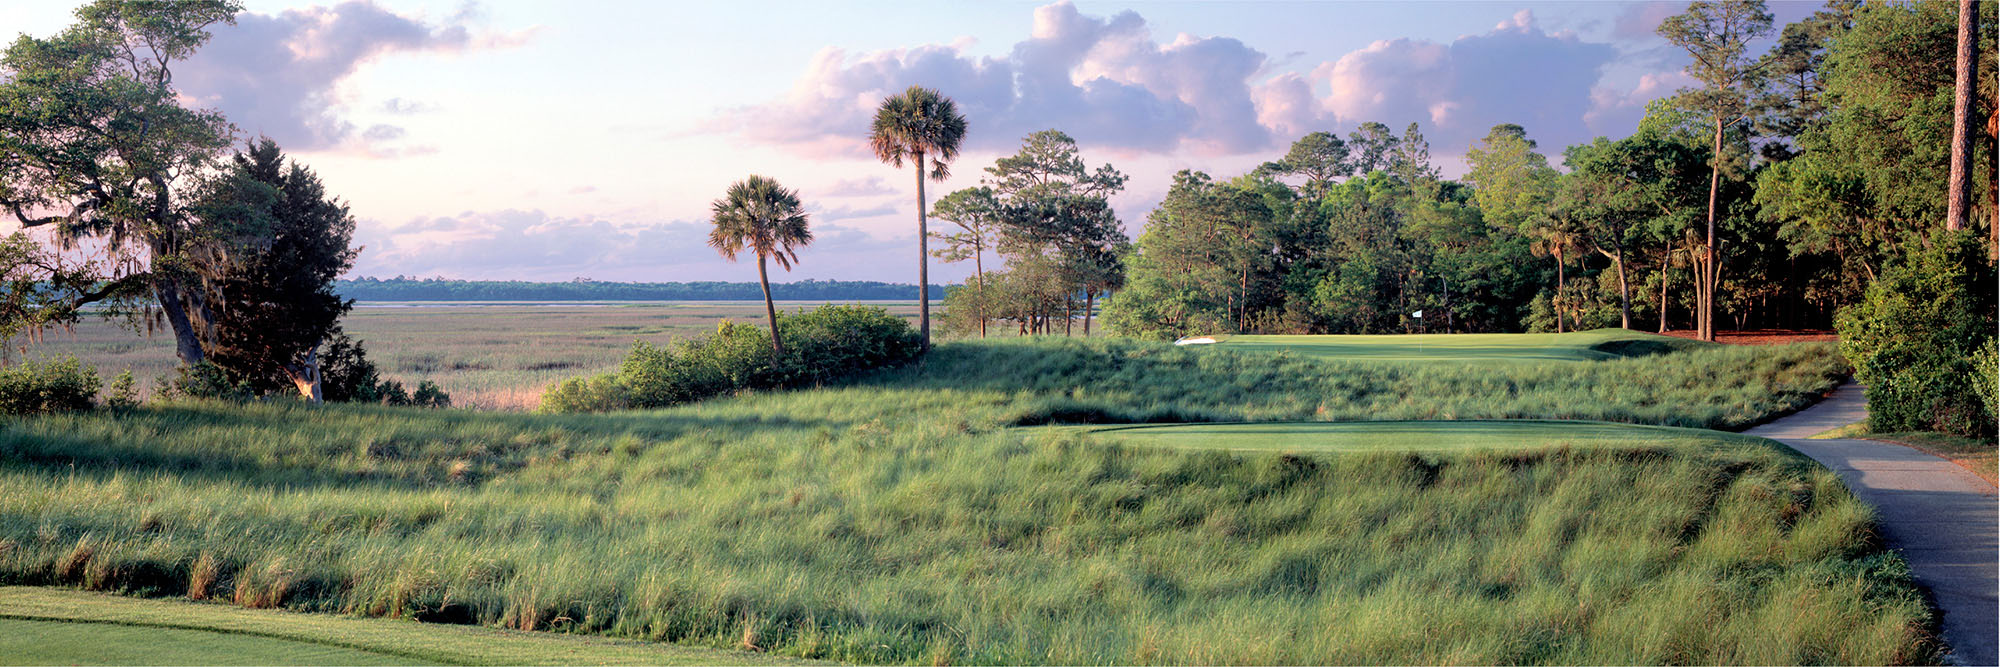 Golf Course Image - Kiawah Cougar Point No. 6